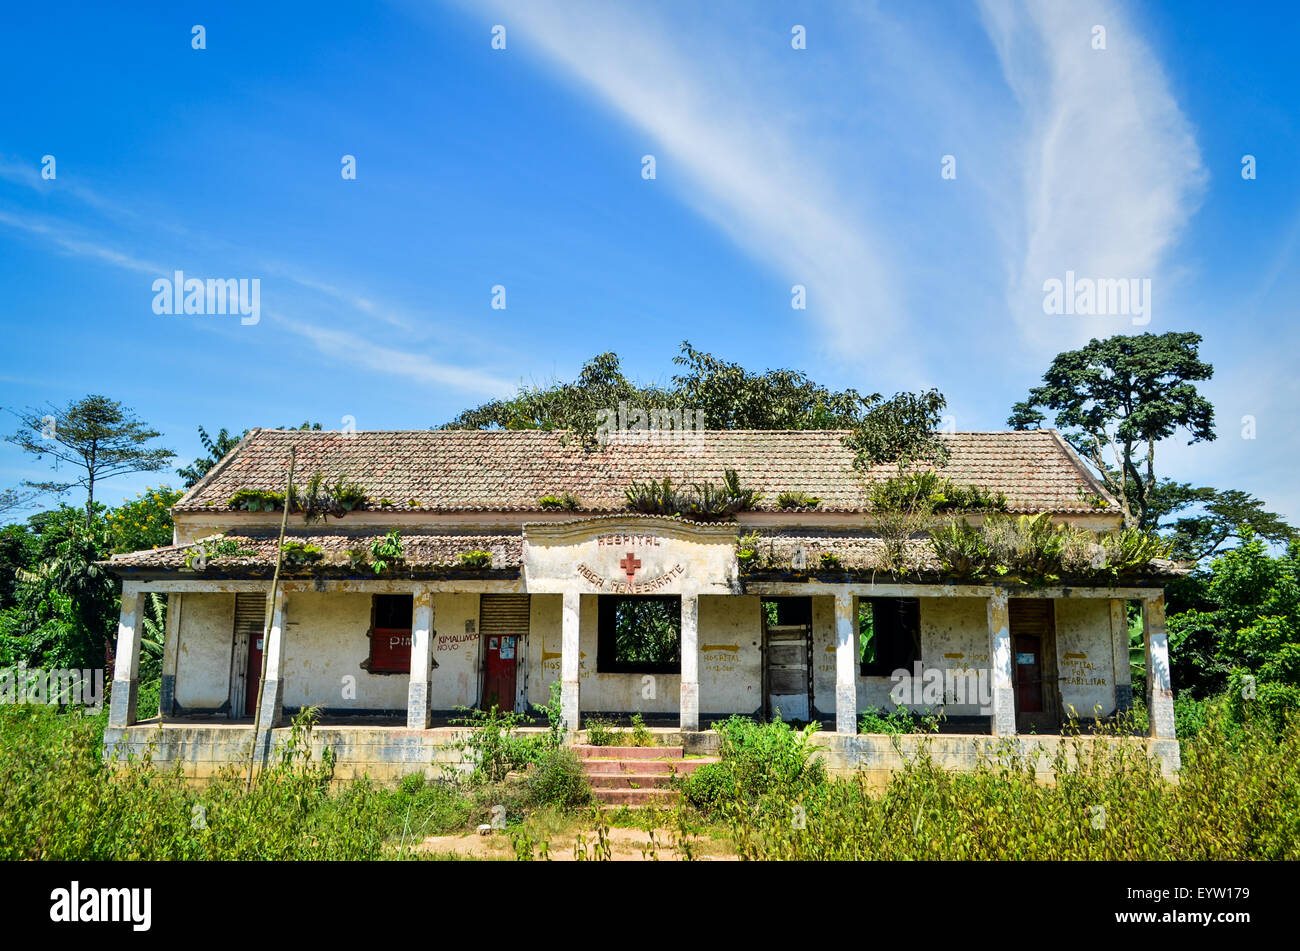 Ruins of a hospital / health center in rural Angola (Monserrate, Cuanza Norte) - Stock Image